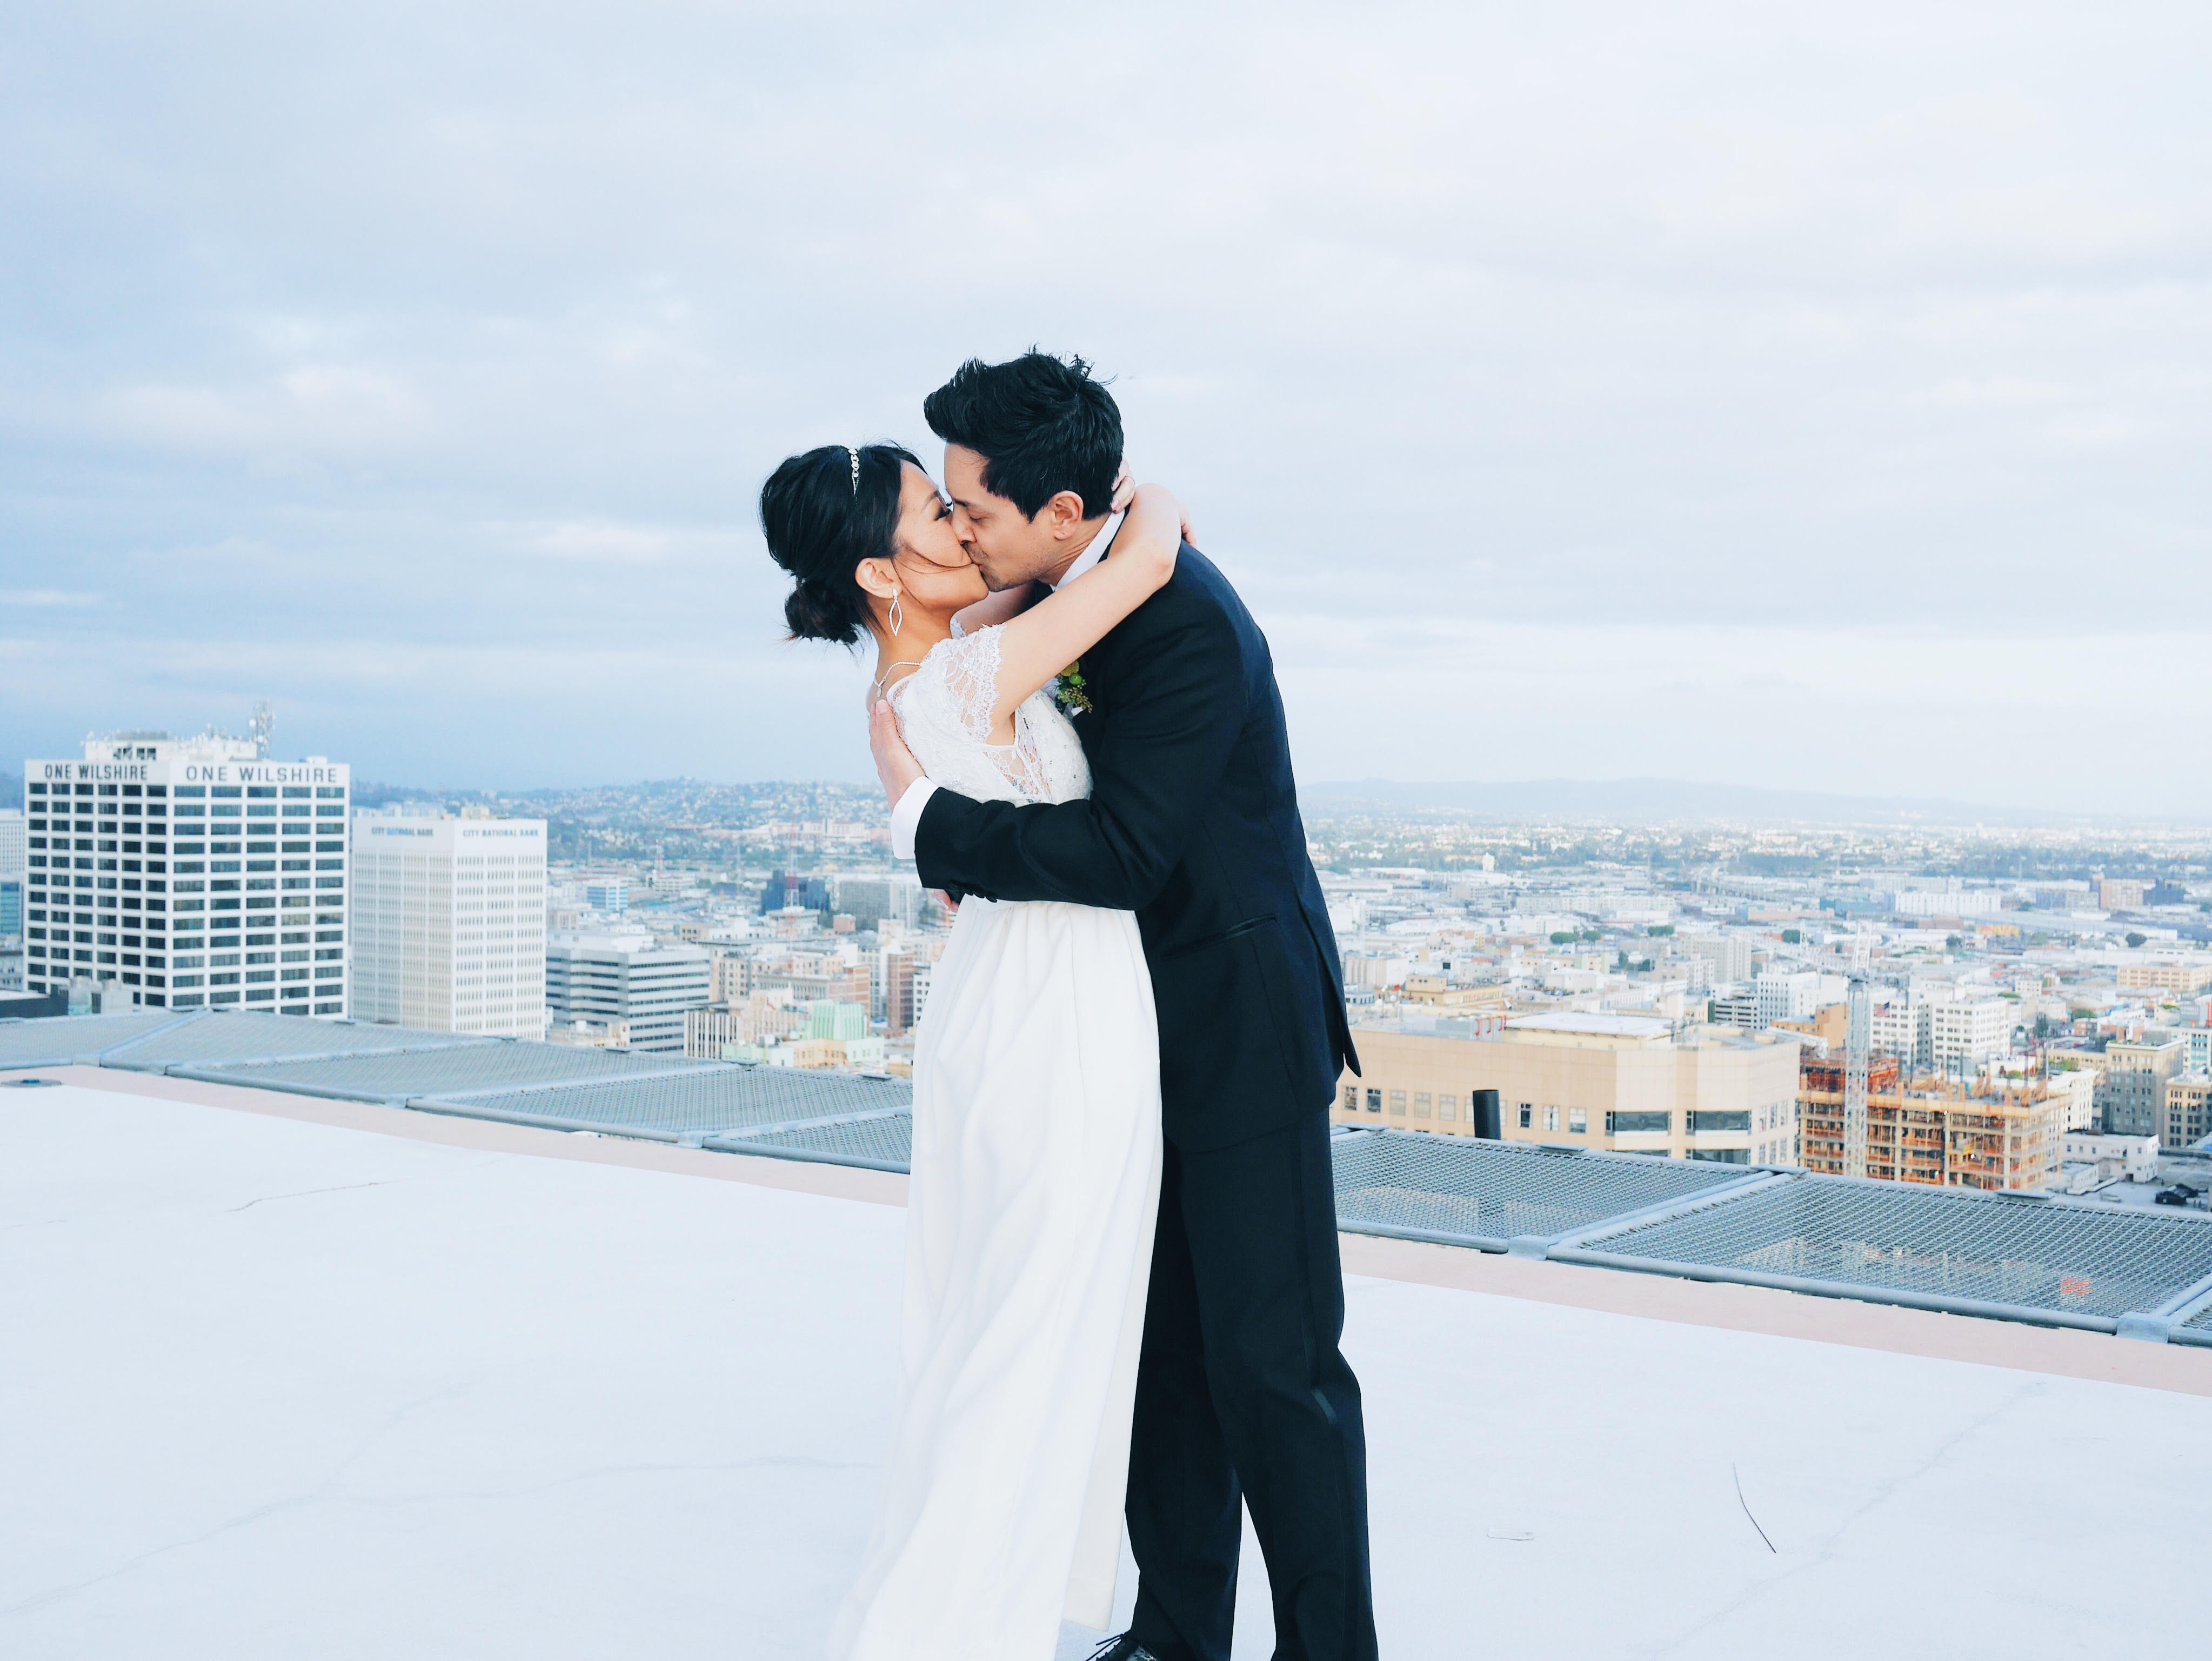 dtla elopement, elopement, bhldn wedding dress, jenny yoo, downtown la wedding